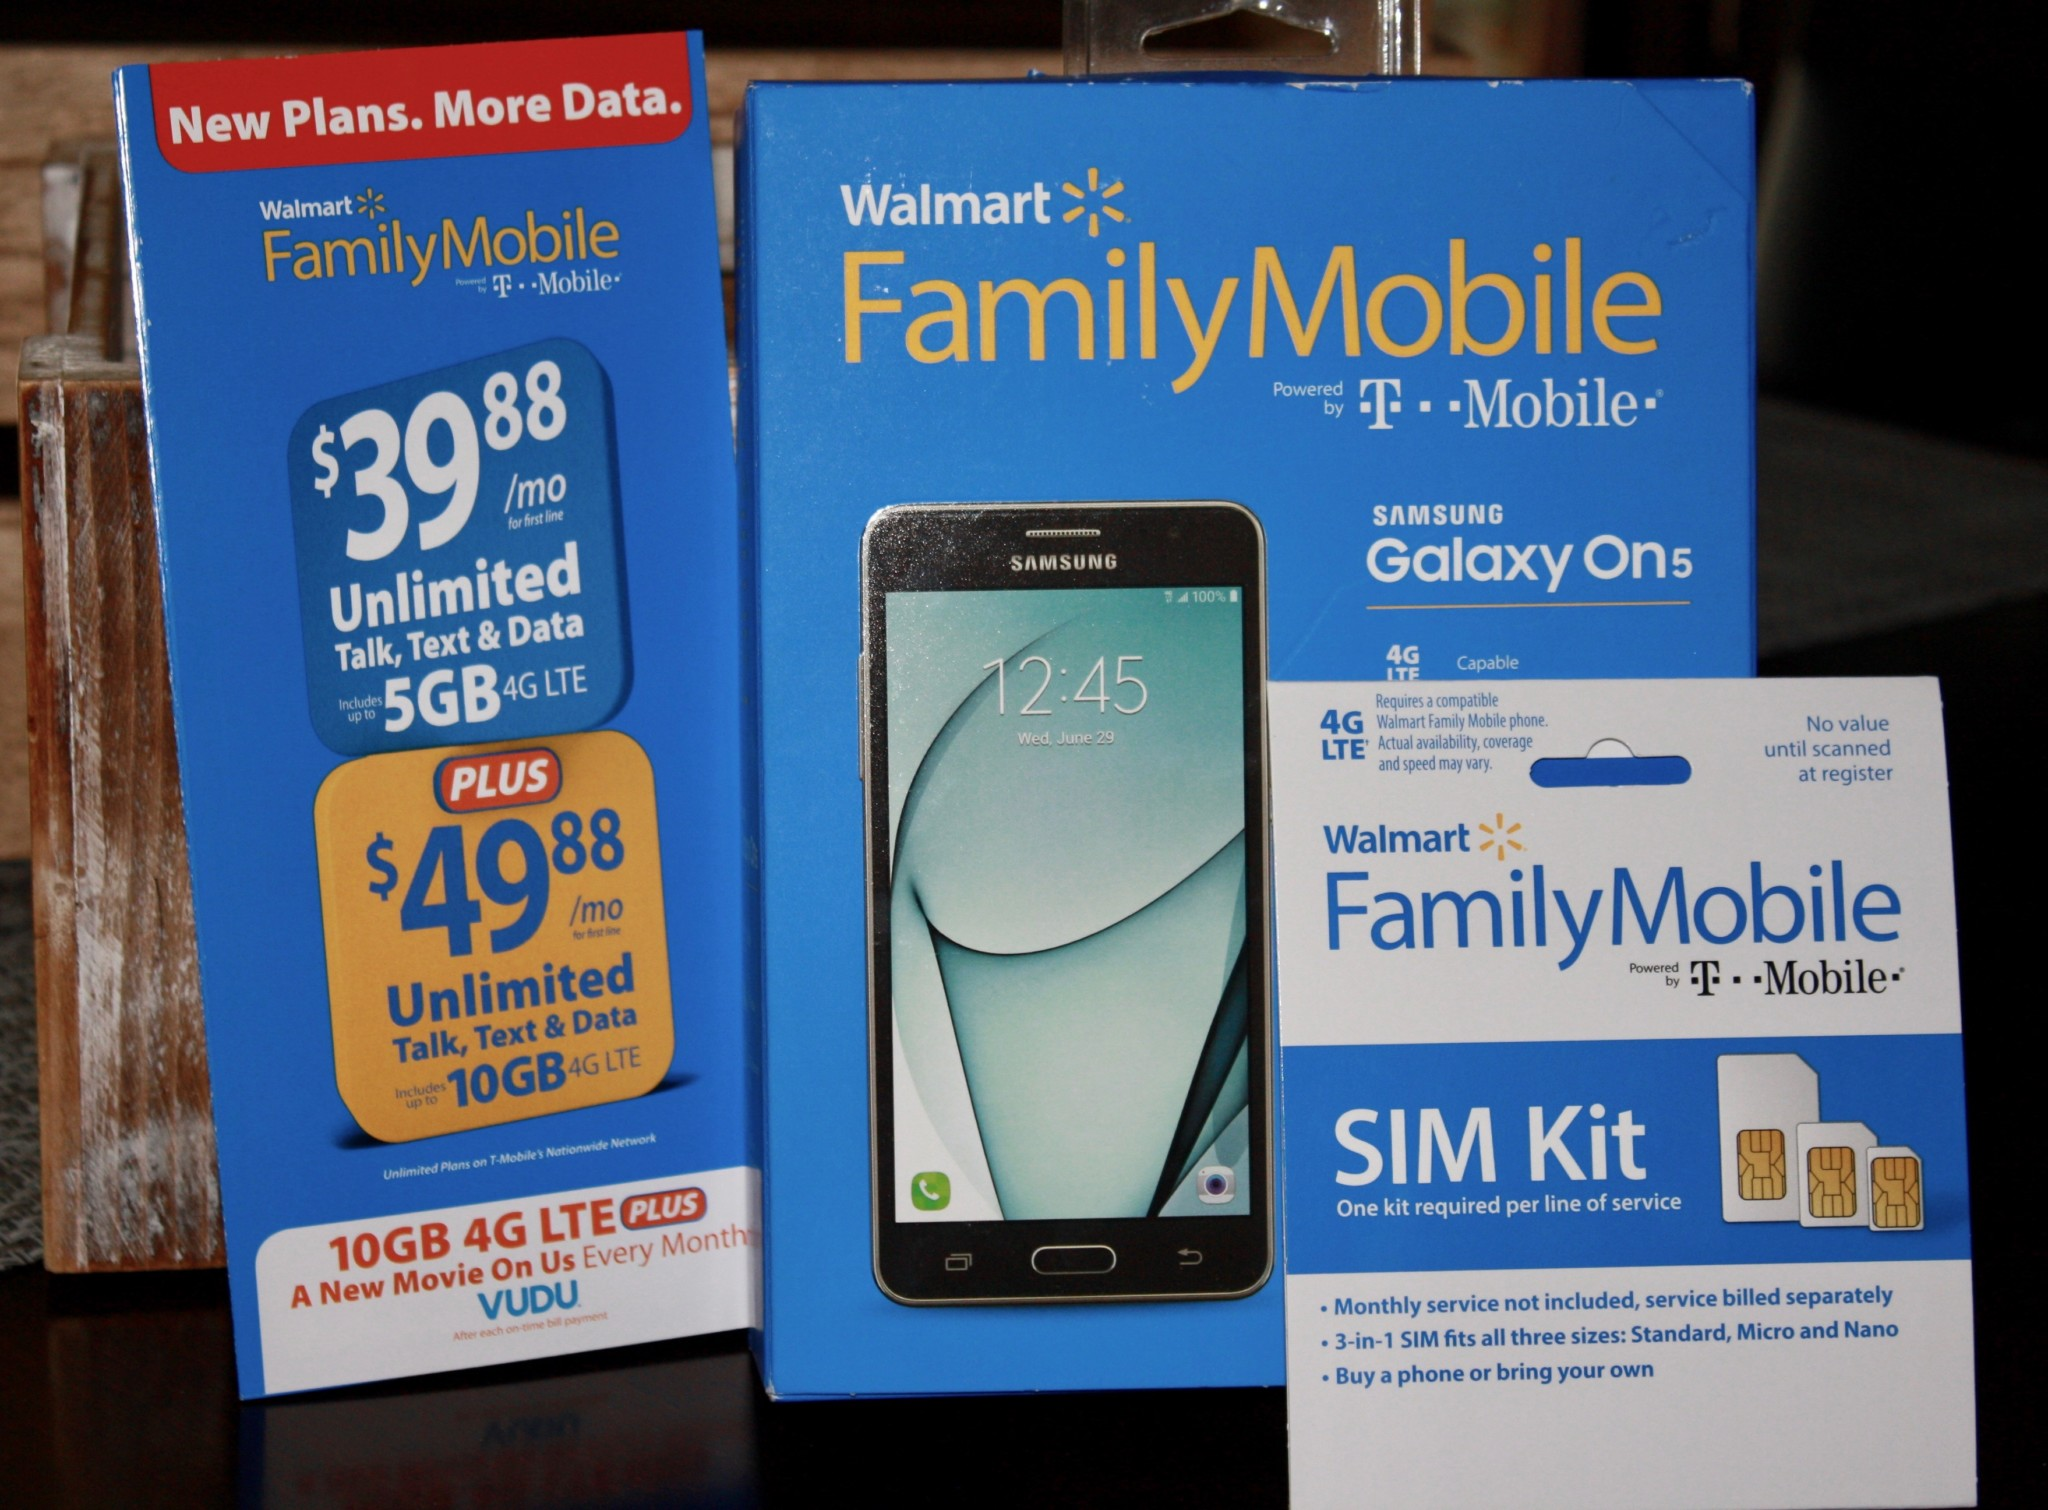 walmart-family-mobile-package-at-home